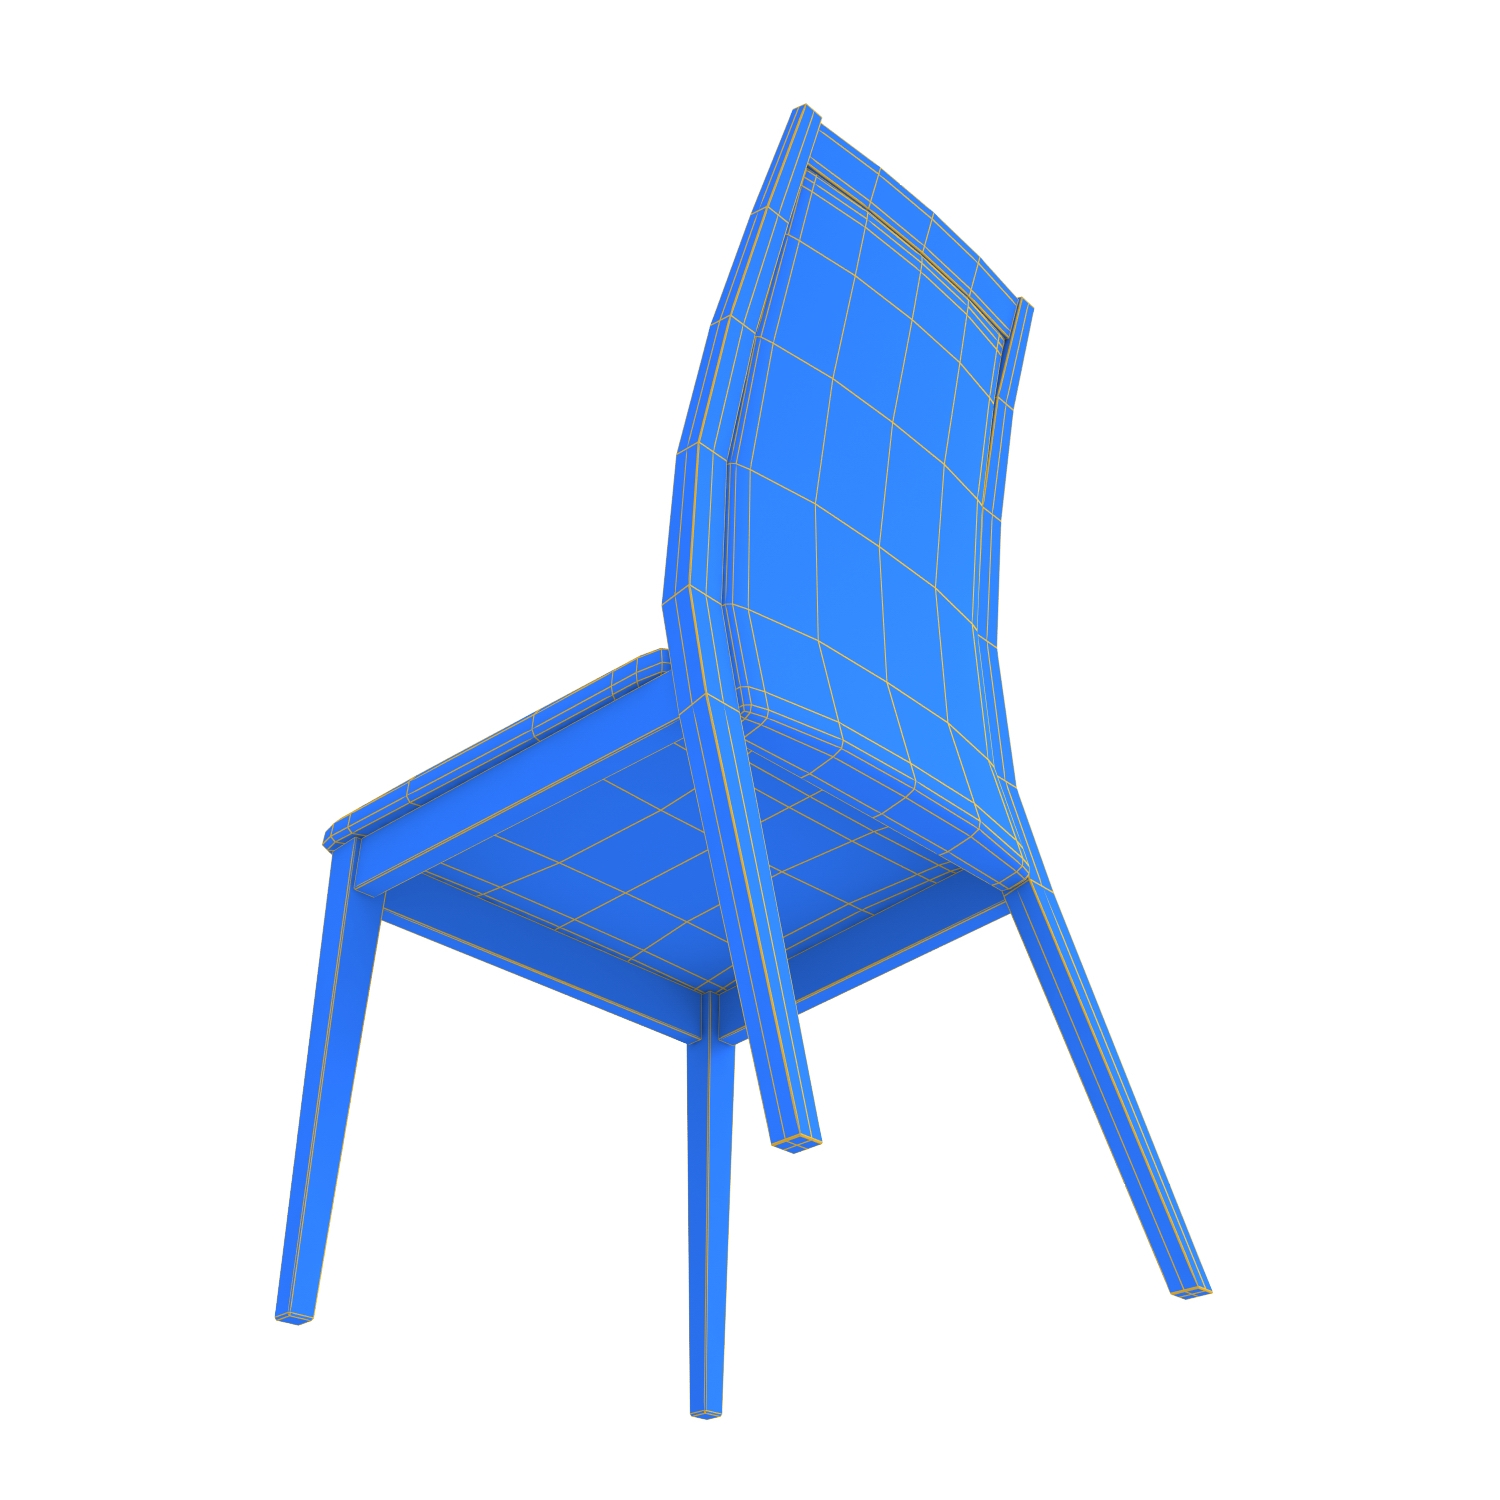 Chair Cortina Olivo Amp Godeassi 3d Model